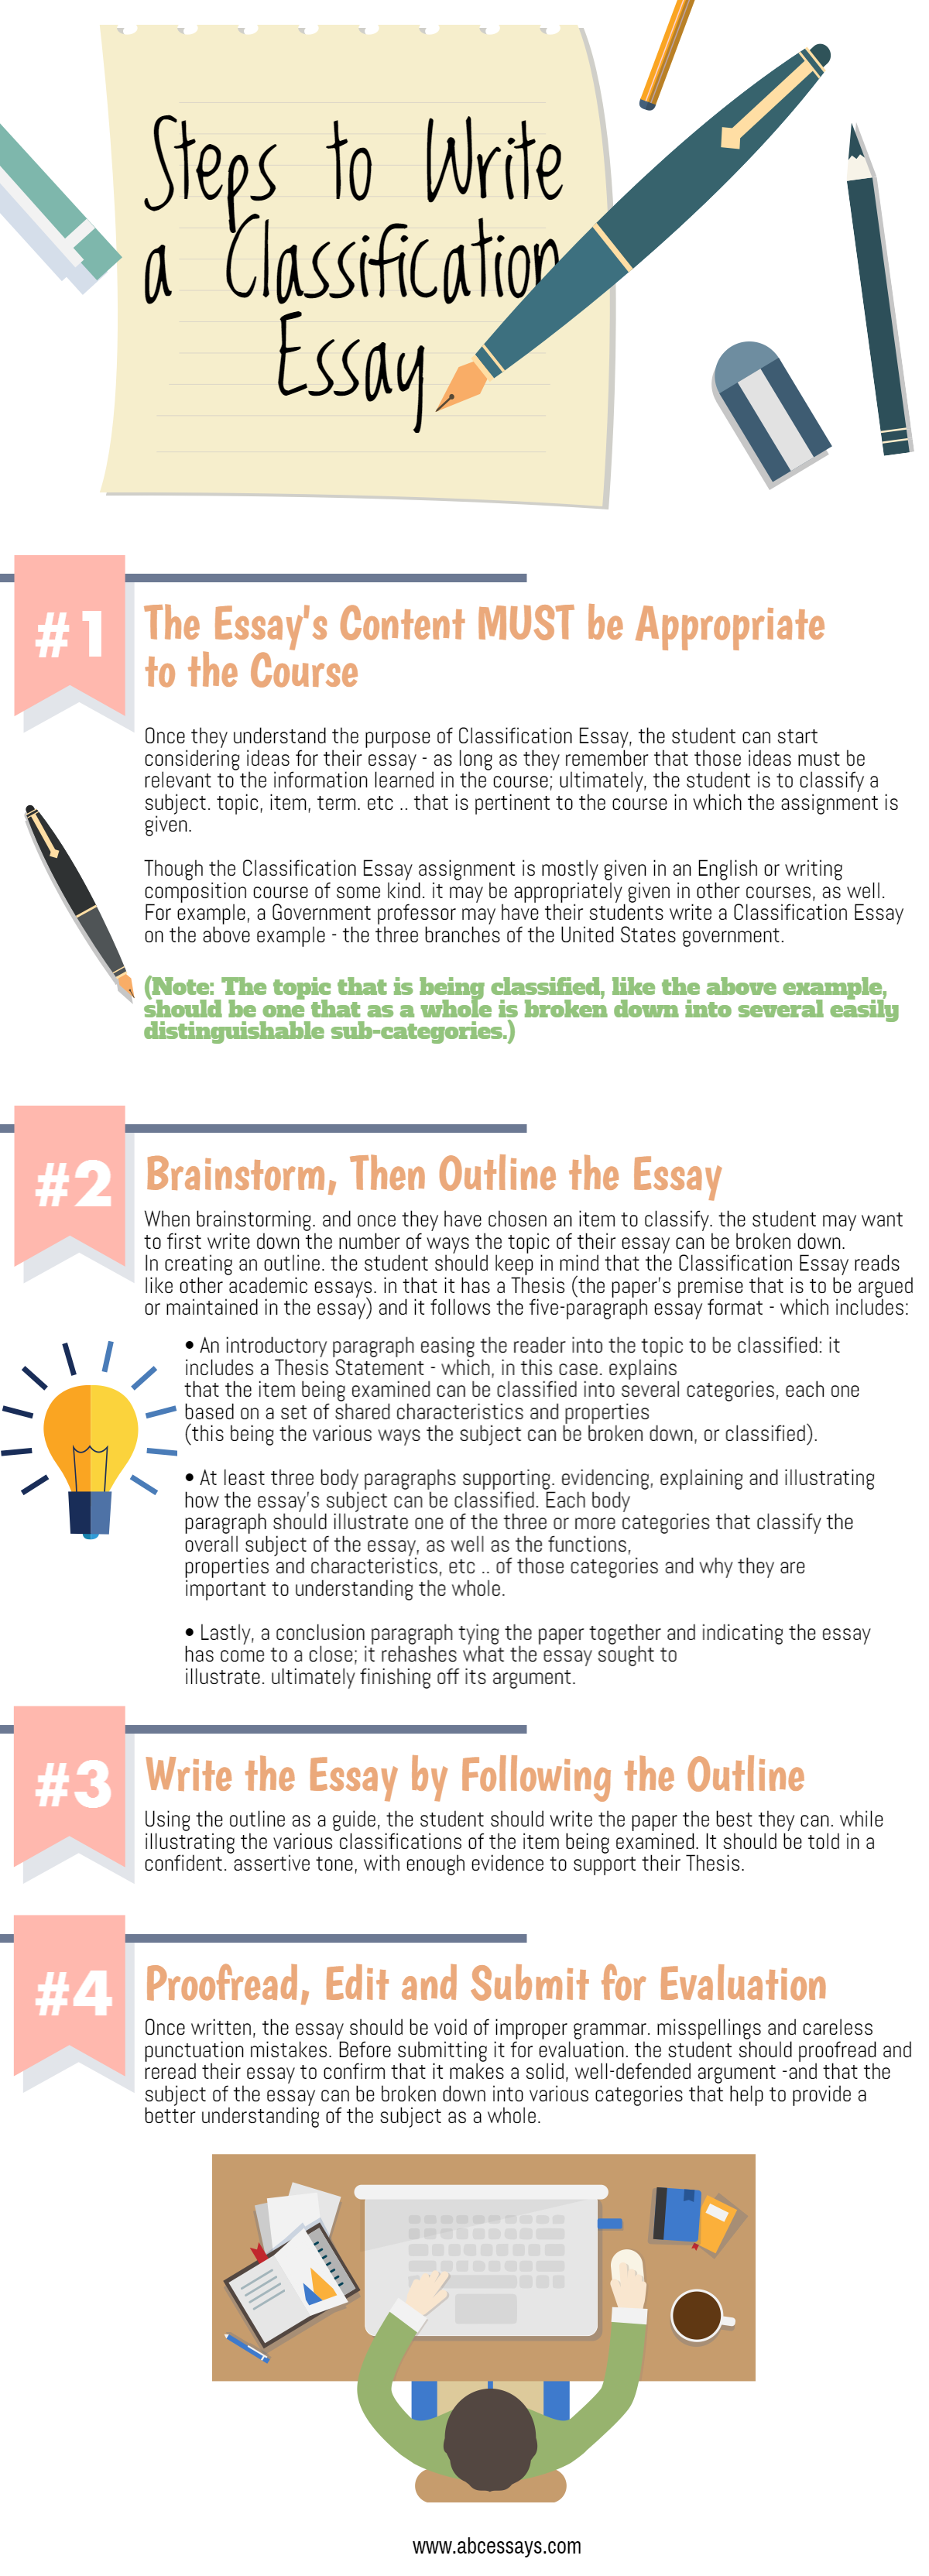 classification essay topics essay topics on love love essay topics  how to write classification essay division essay examples division essay example classification and division essay classification